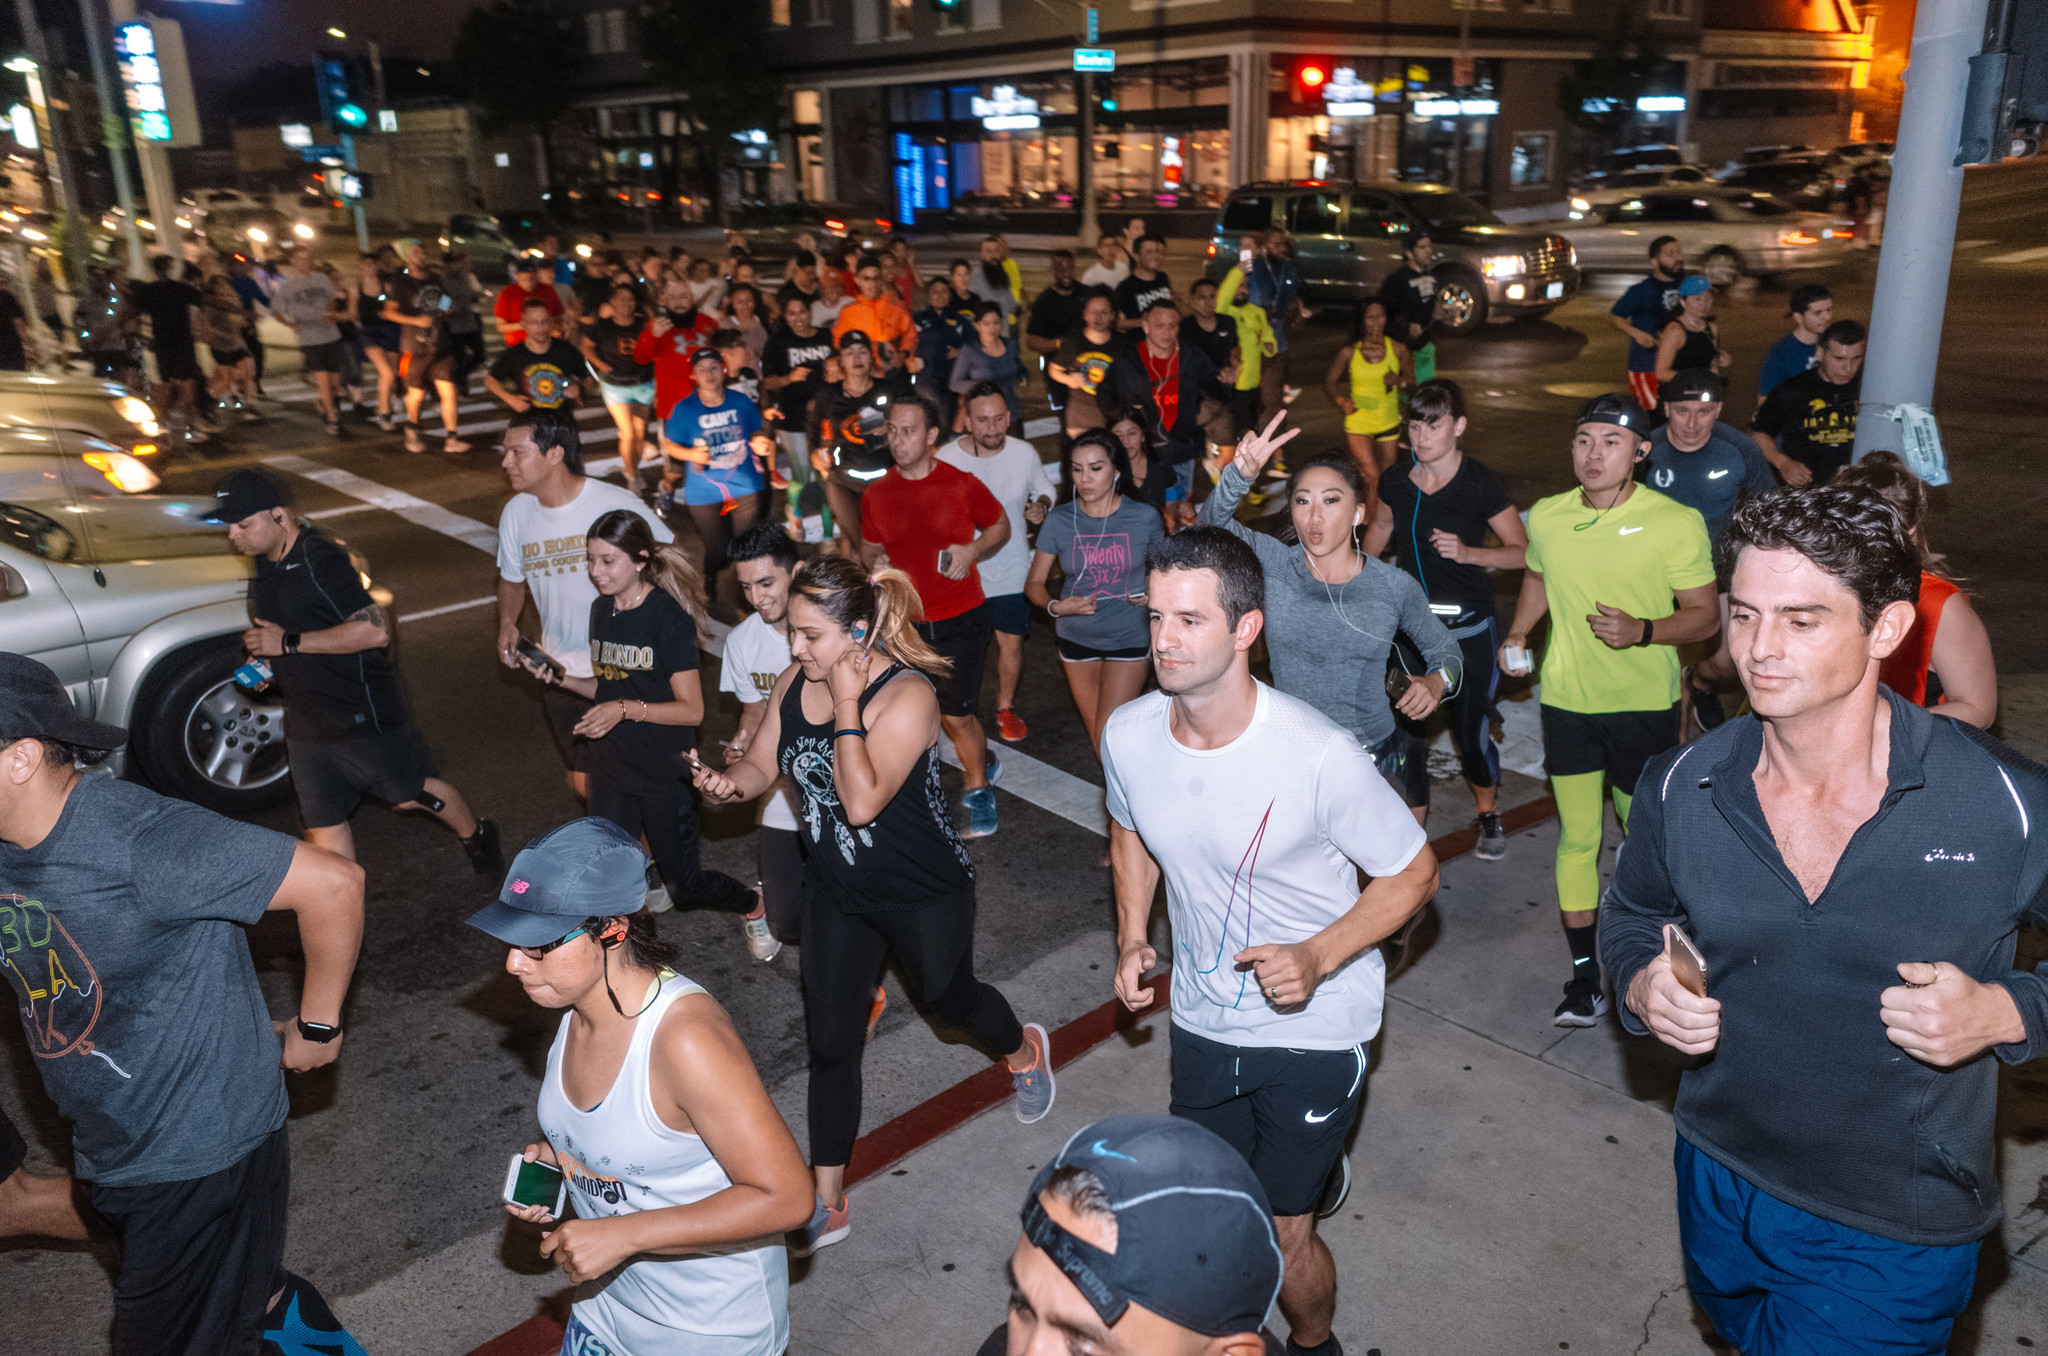 BlacklistLA Run Organization on National Running Day. June 7, 2017. Credit: Hans Meckler What start